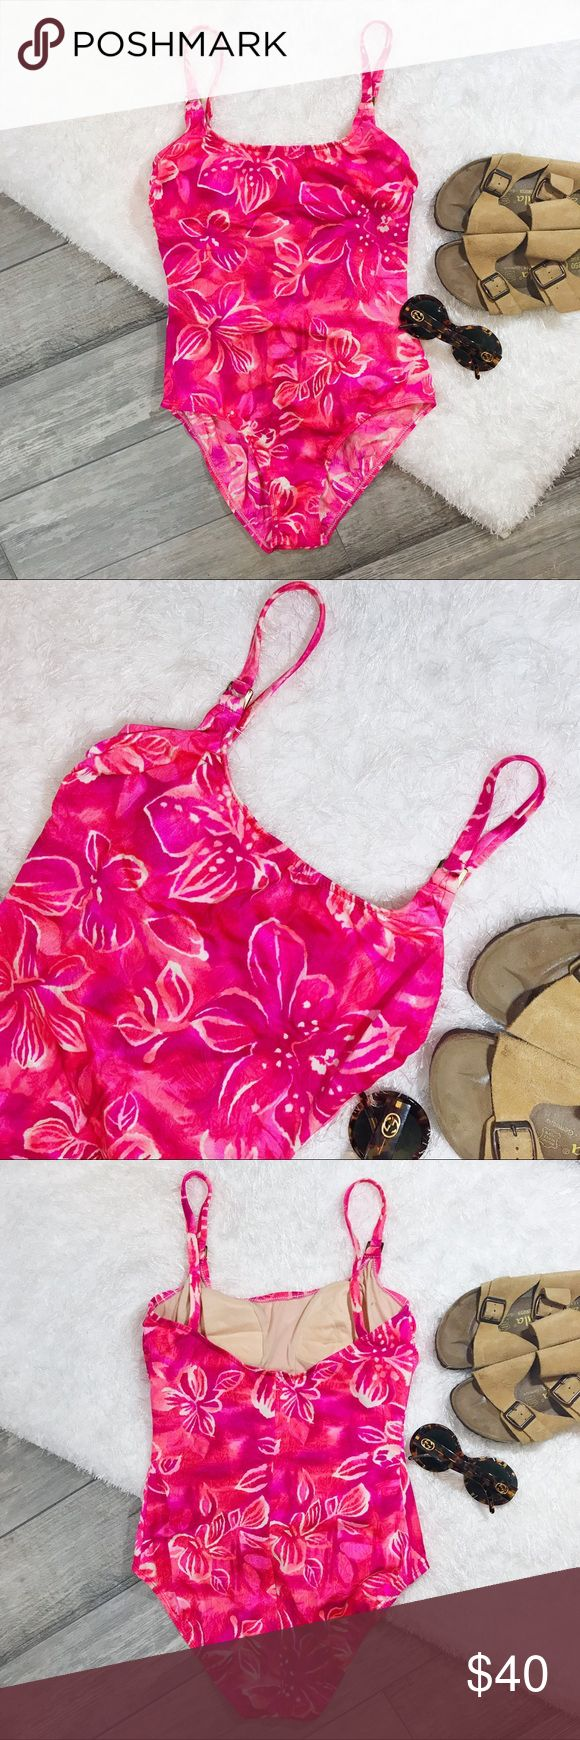 VINTAGE Athena Hawaiian Theme One Piece Swimsuit Beautiful Vintage one piece, vibrant pink floral Swimsuit with gold hardware. Nylon & spandex, so it has nice stretch- super flattering! Size 12, APPROX measurements: 13in side seam, 14.5 in chest, 14.5in L straps, 24.5in from bottom of strap to end of crotch. Excellent Vintage condition Vintage Swim One Pieces